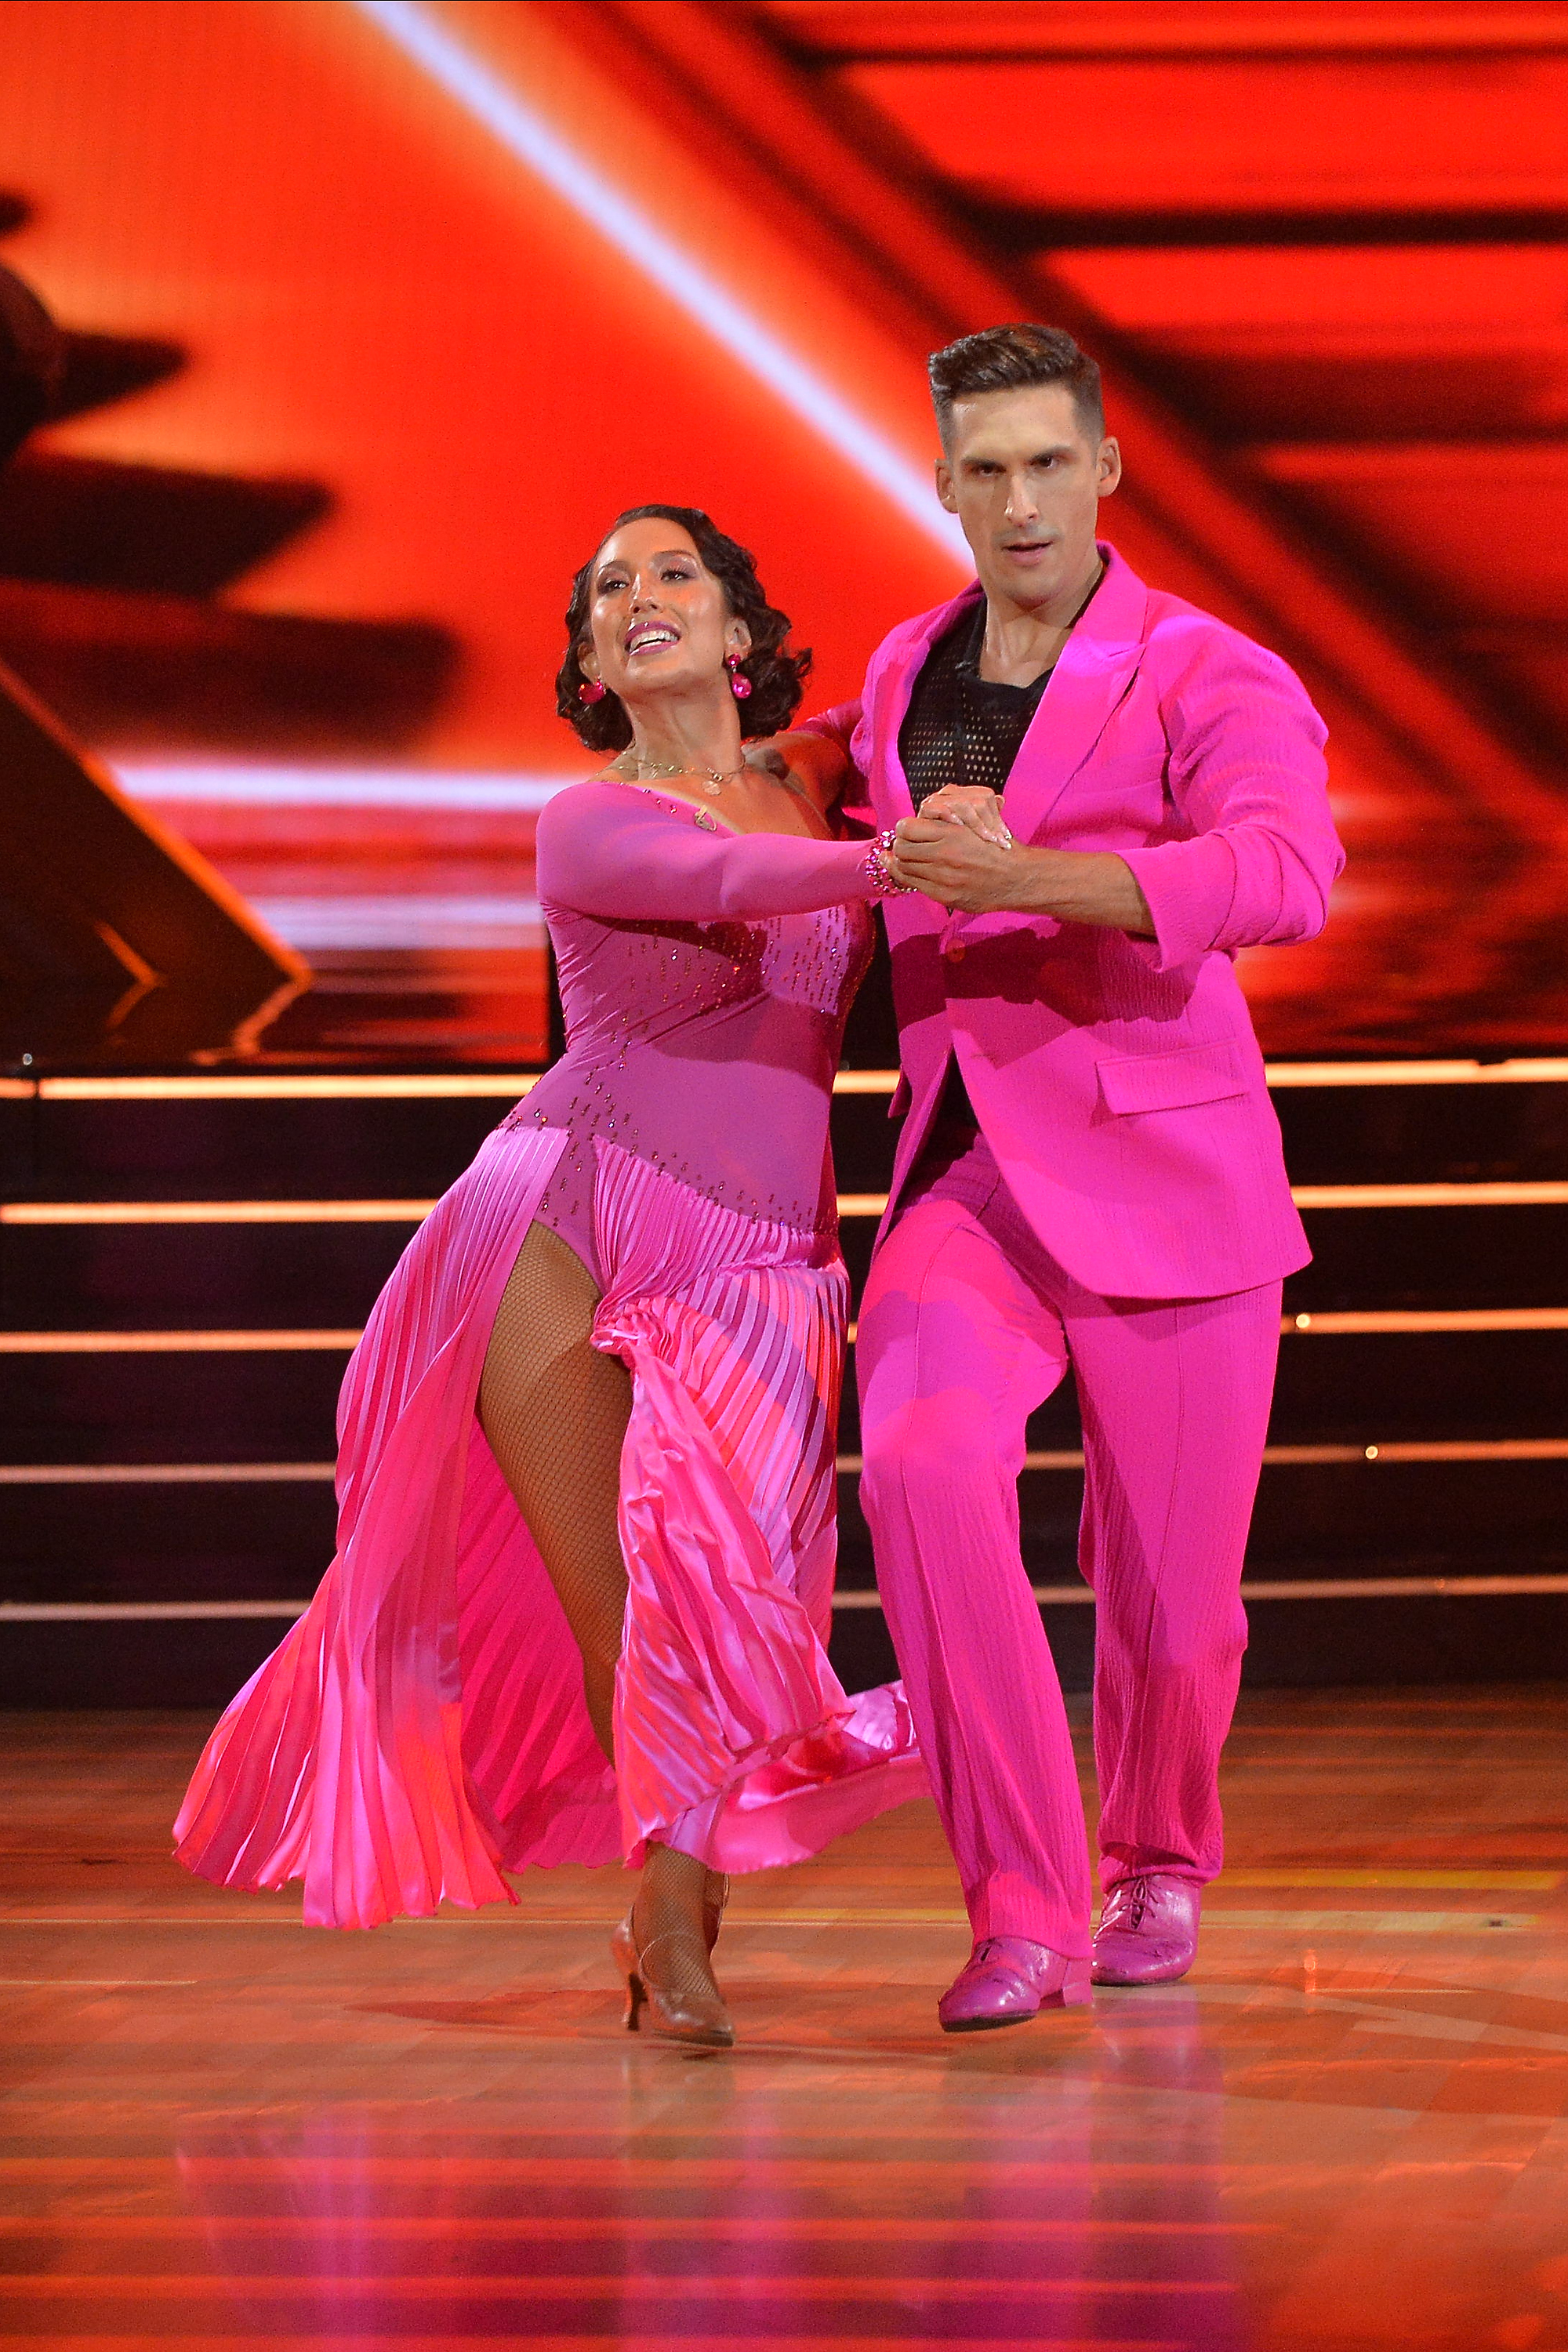 """Cheryl Burke and Cody Rigsby compete on episode one Season 30 of """"Dancing with the Stars."""" Burke tested positive for COVID-19 and will quarantine for 10 days."""